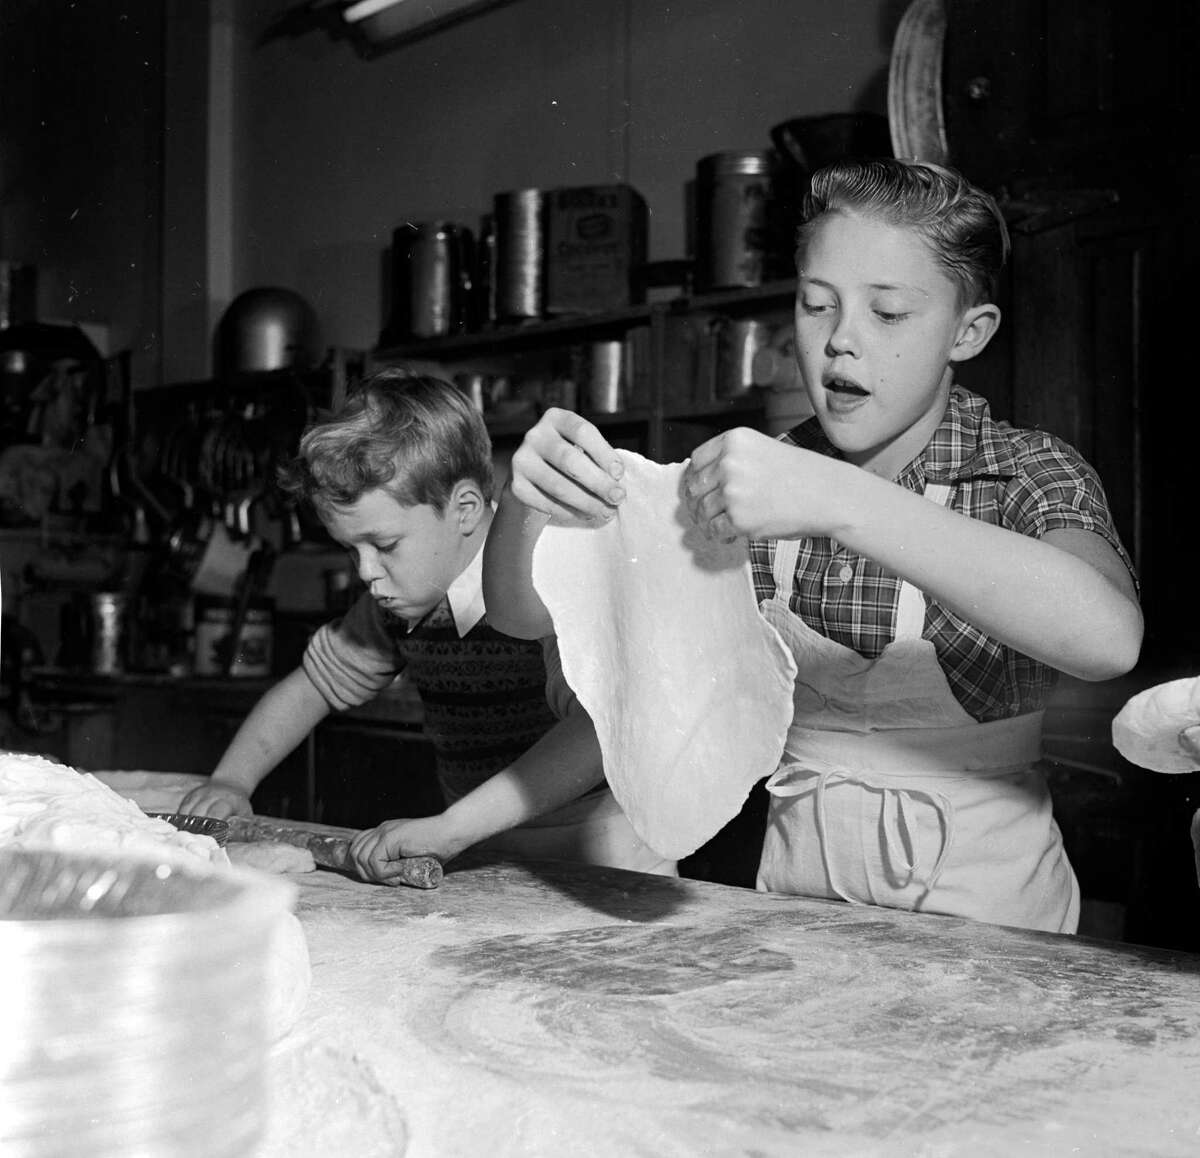 Circa 1955: Young television stars Glenn (left) and Ronnie Walken, later film star Christopher Walken, roll out dough for pie crusts at their father's bakery.